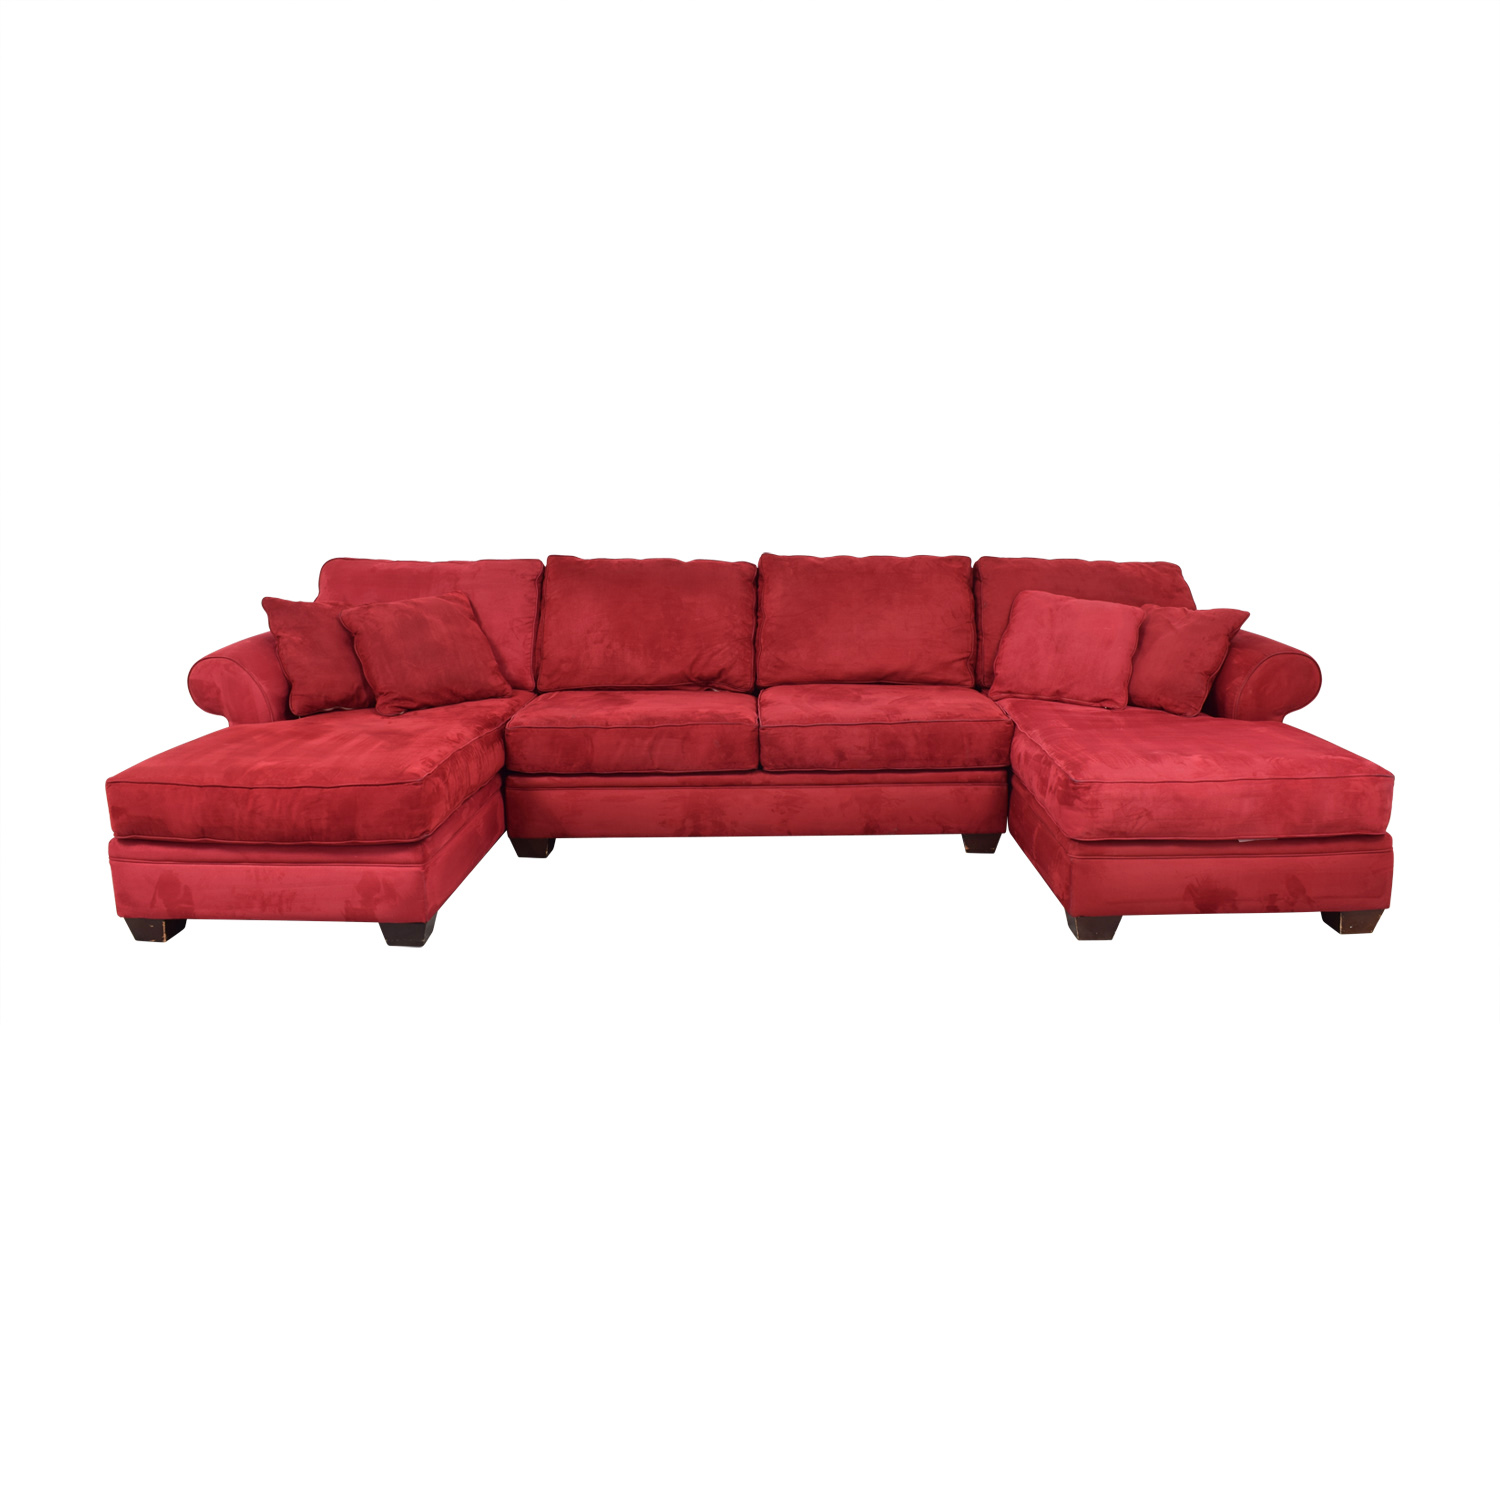 Macy's Macy's U-Shaped Red Double Chaise Sectional on sale